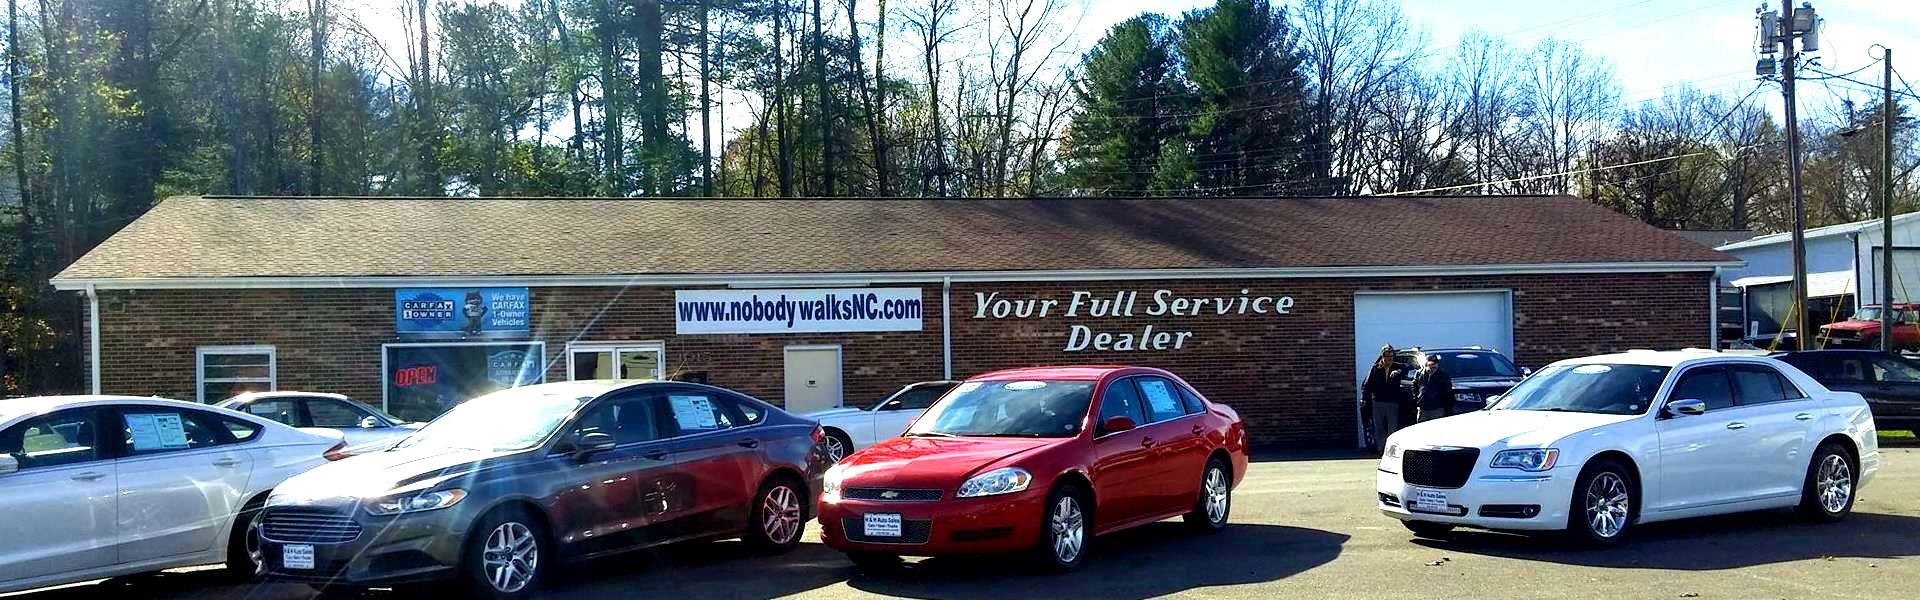 used cars mount airy nc used cars trucks nc h and h auto. Black Bedroom Furniture Sets. Home Design Ideas